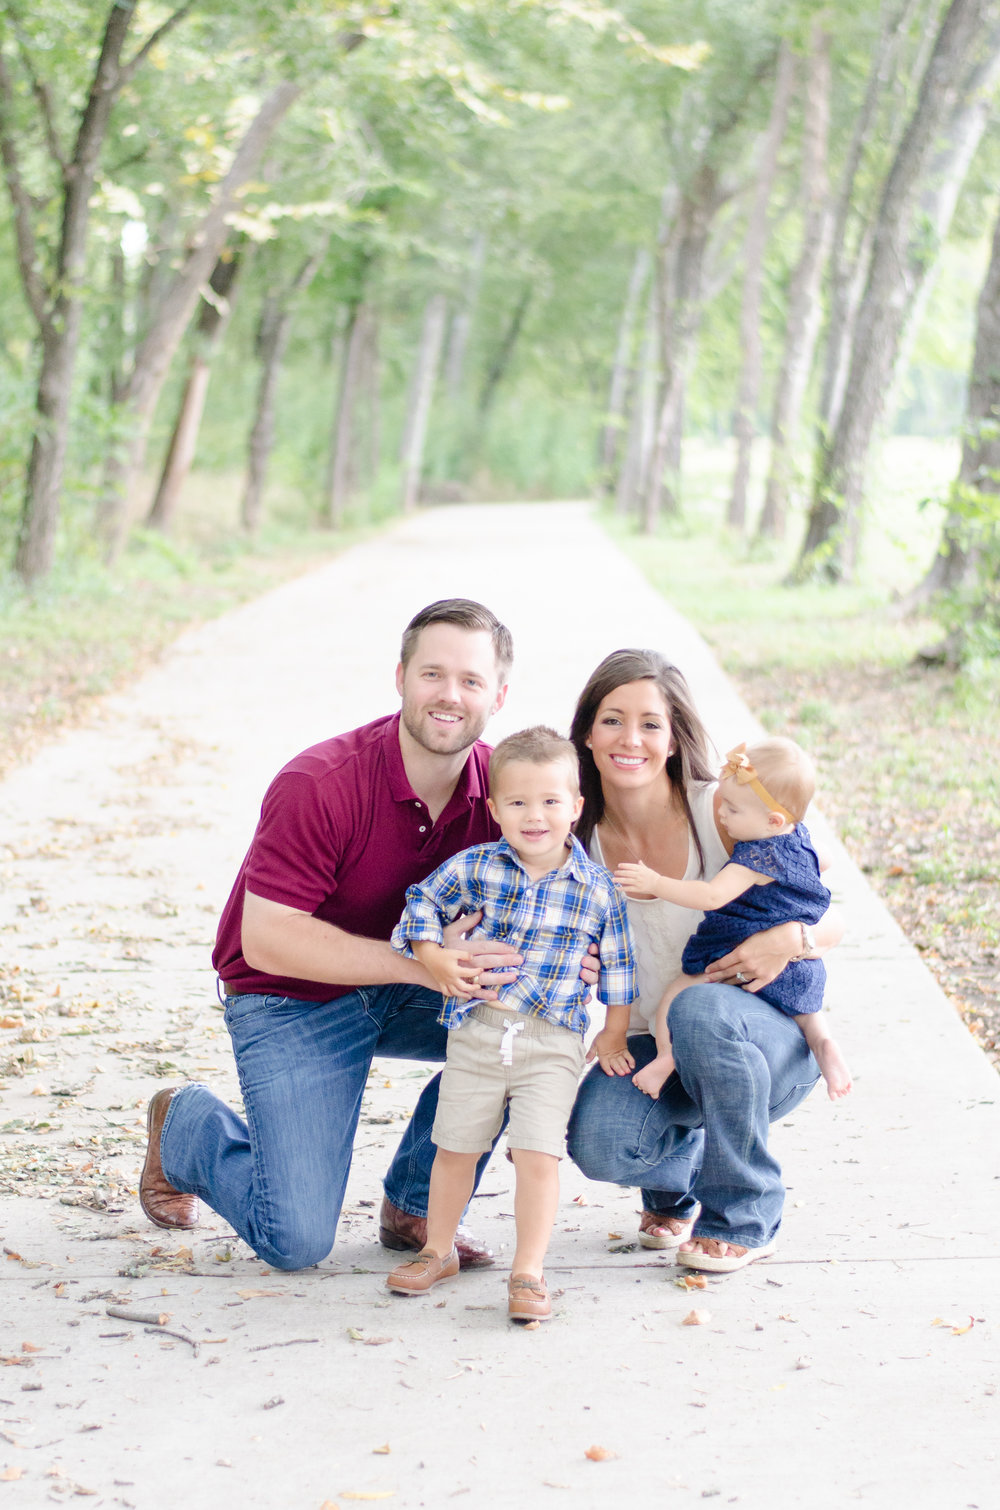 Landon Schneider Photography - Hollek Family-16.jpg